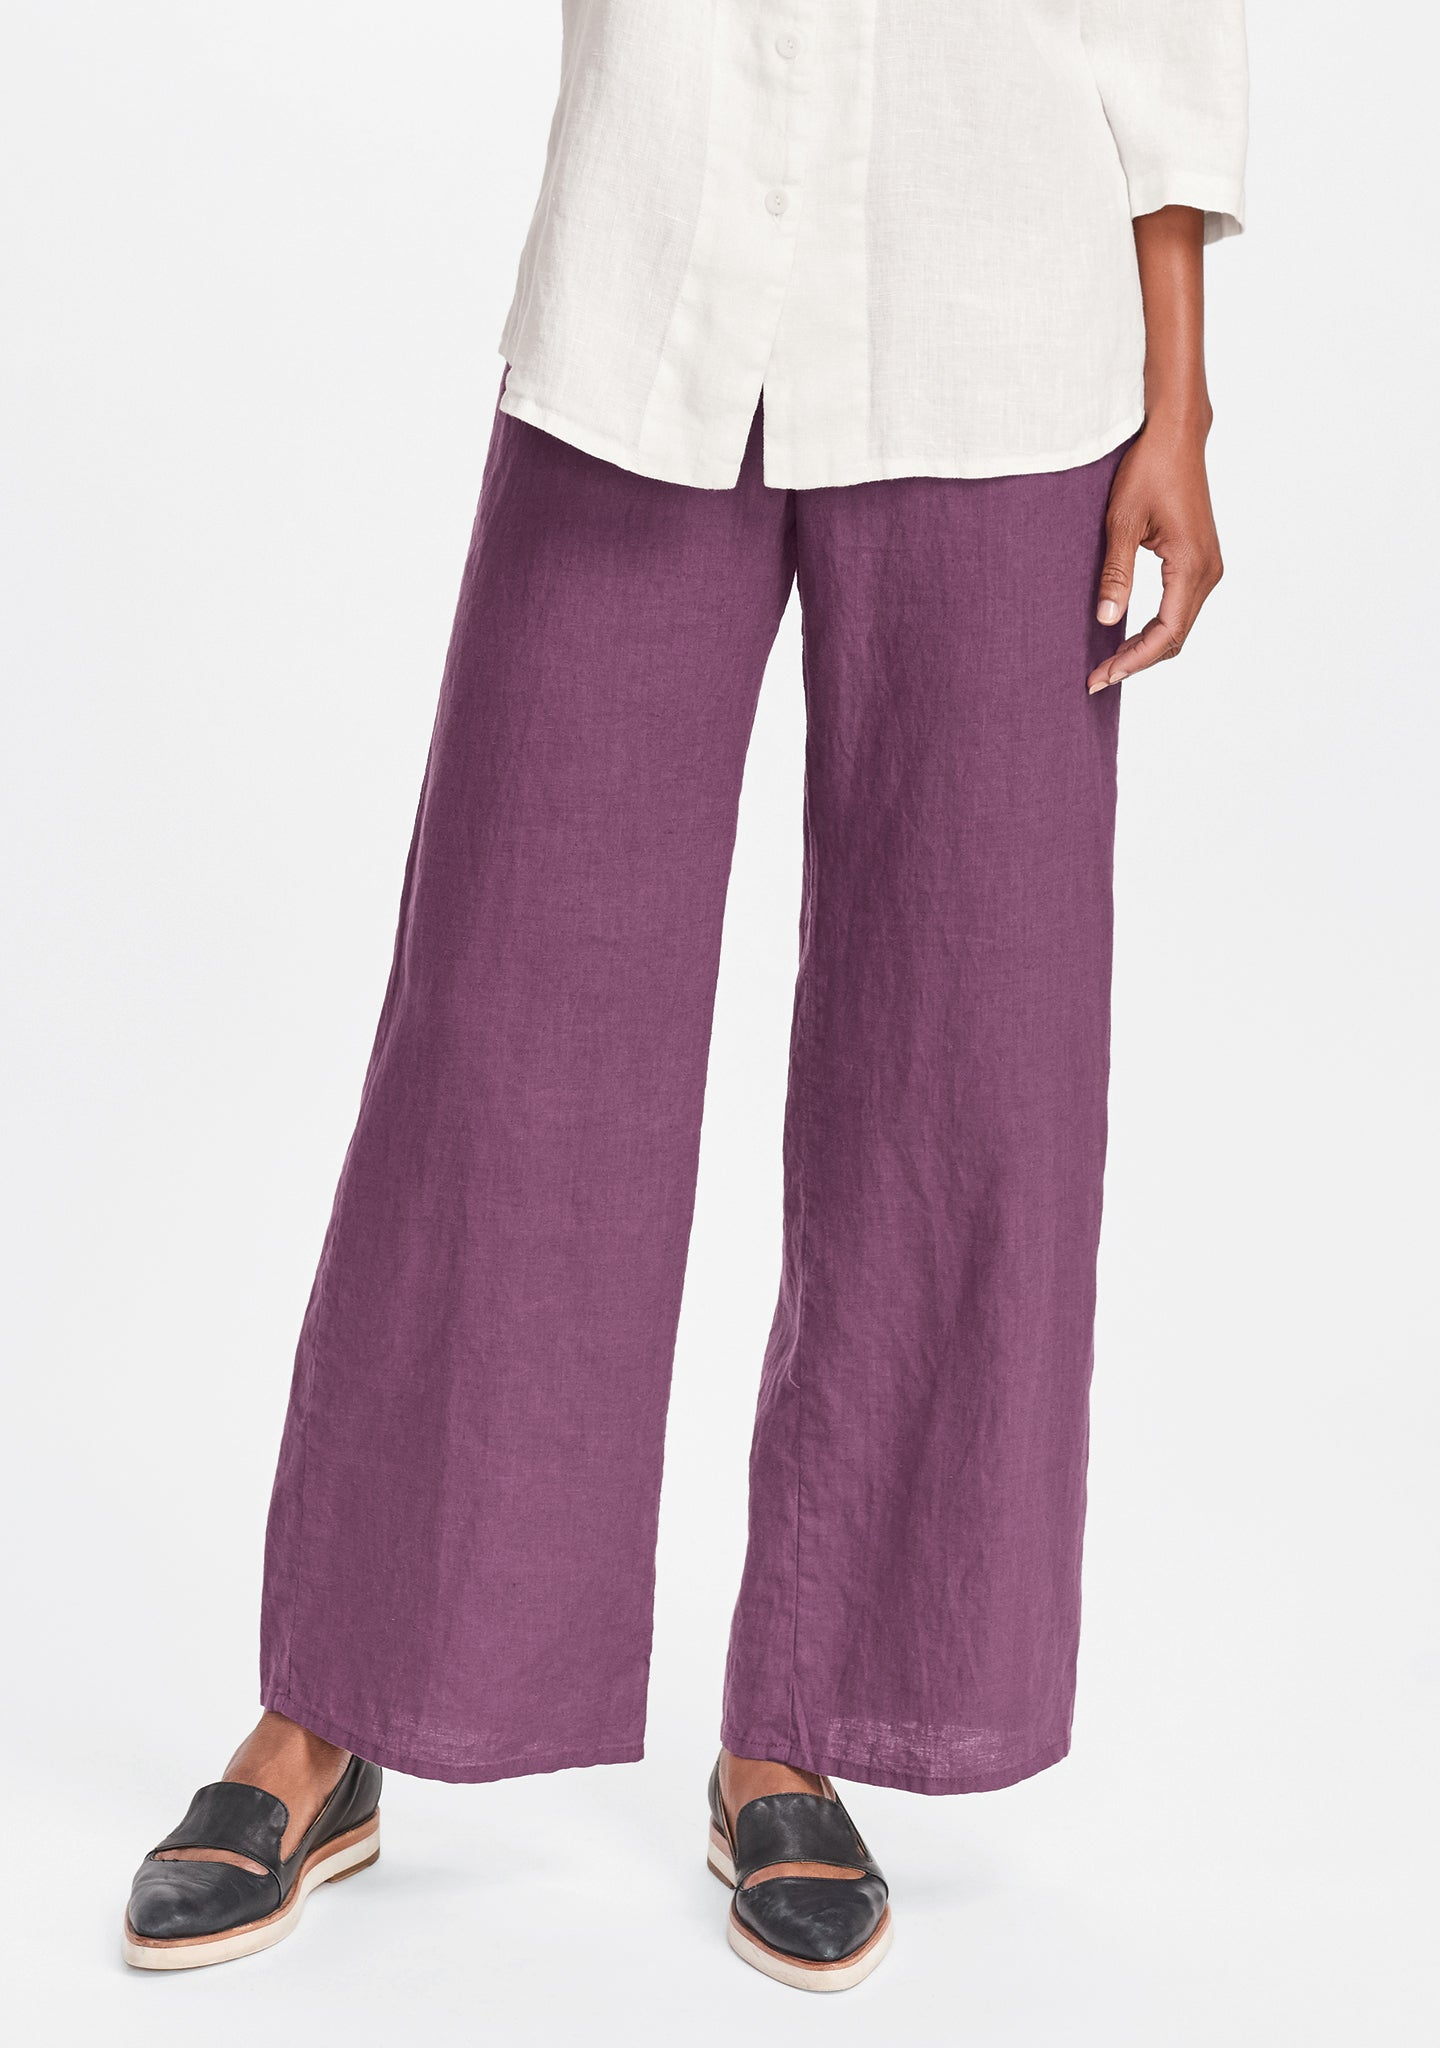 refreshed pant wide leg linen pants purple